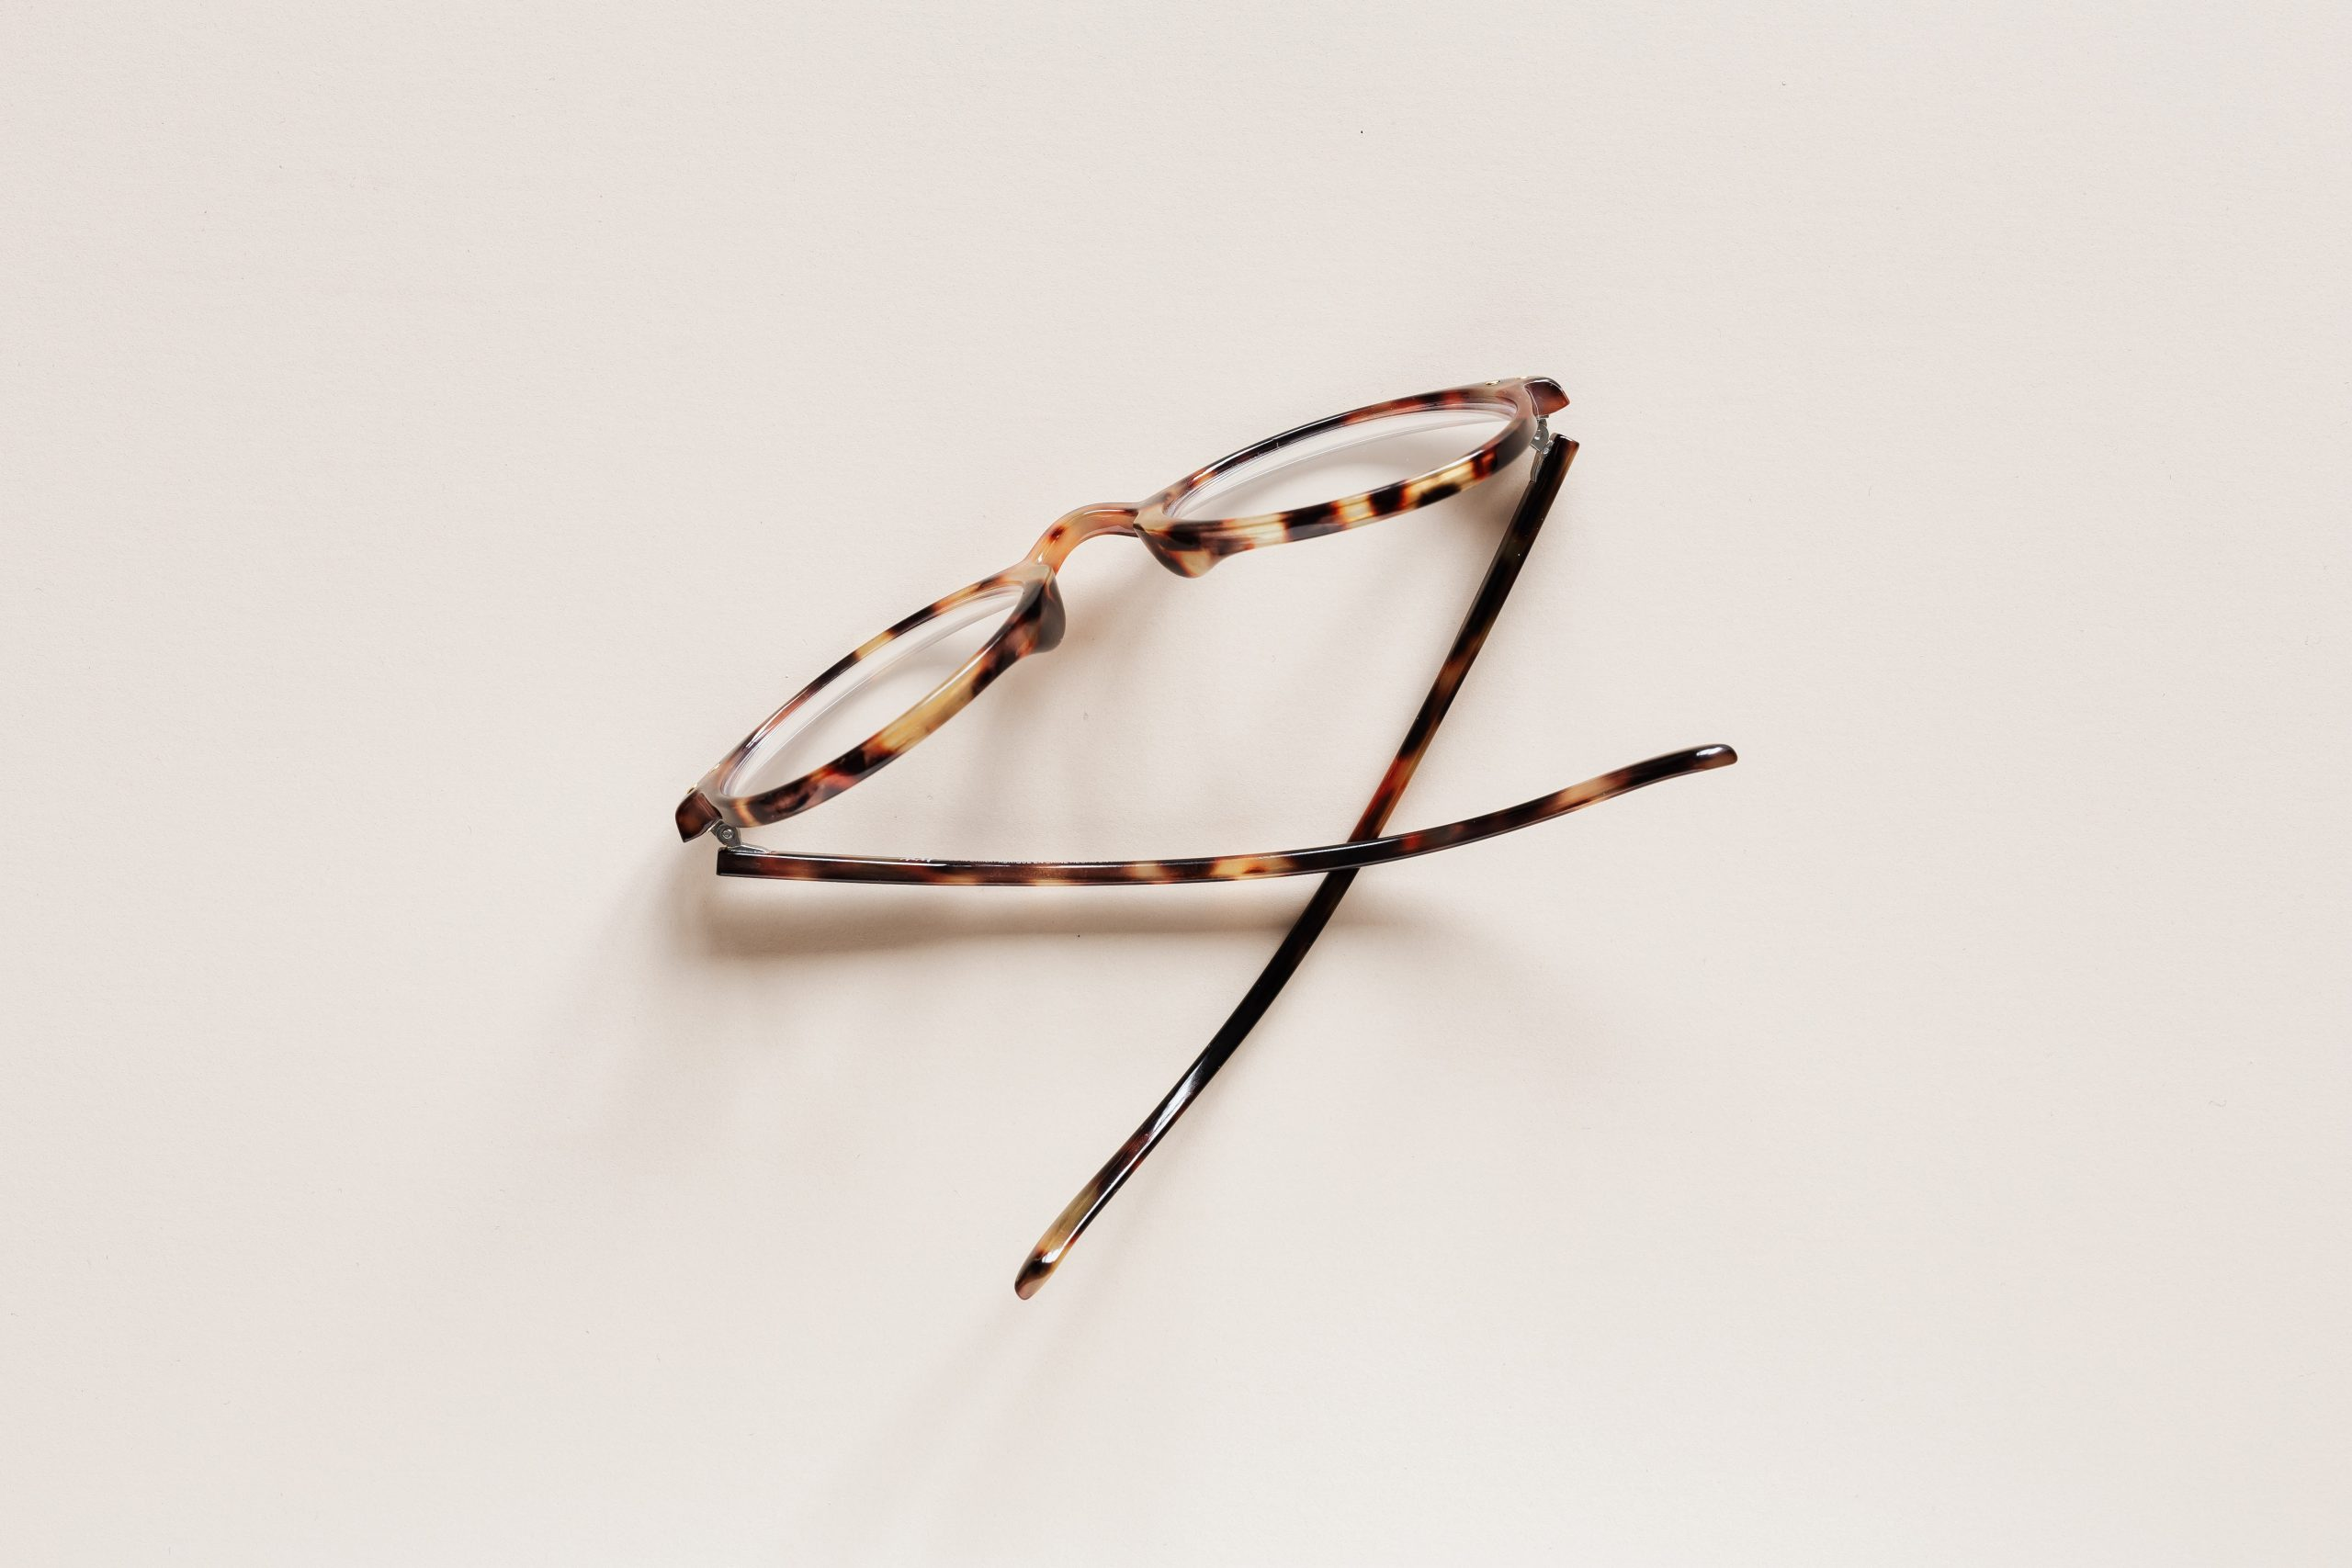 stylish-eyeglasses-placed-on-beige-surface-4226877